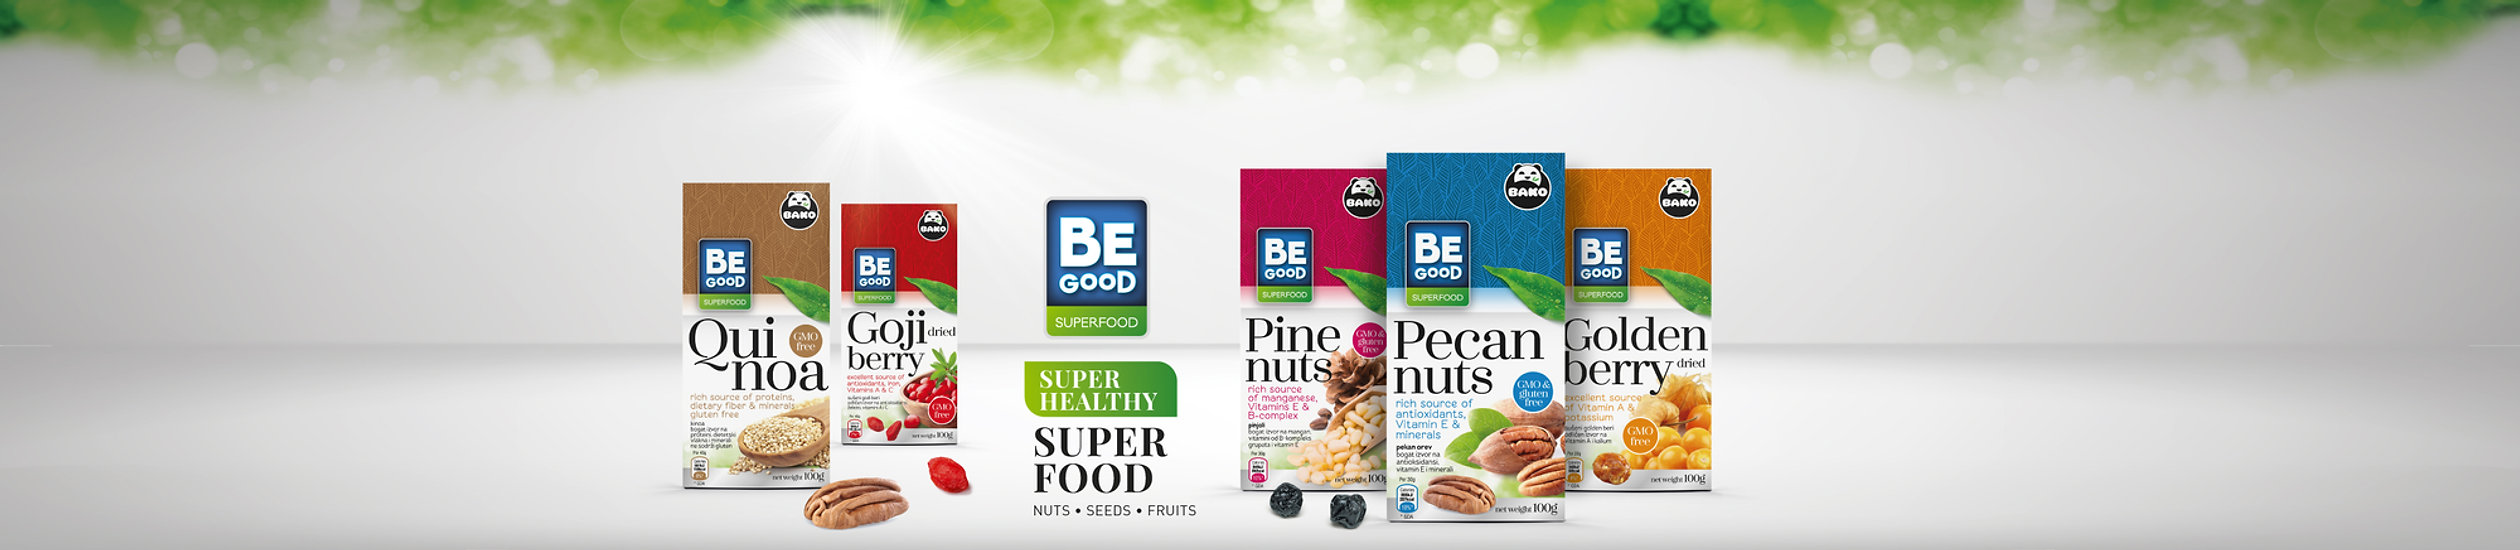 Be Good Superfood banner 2.jpg